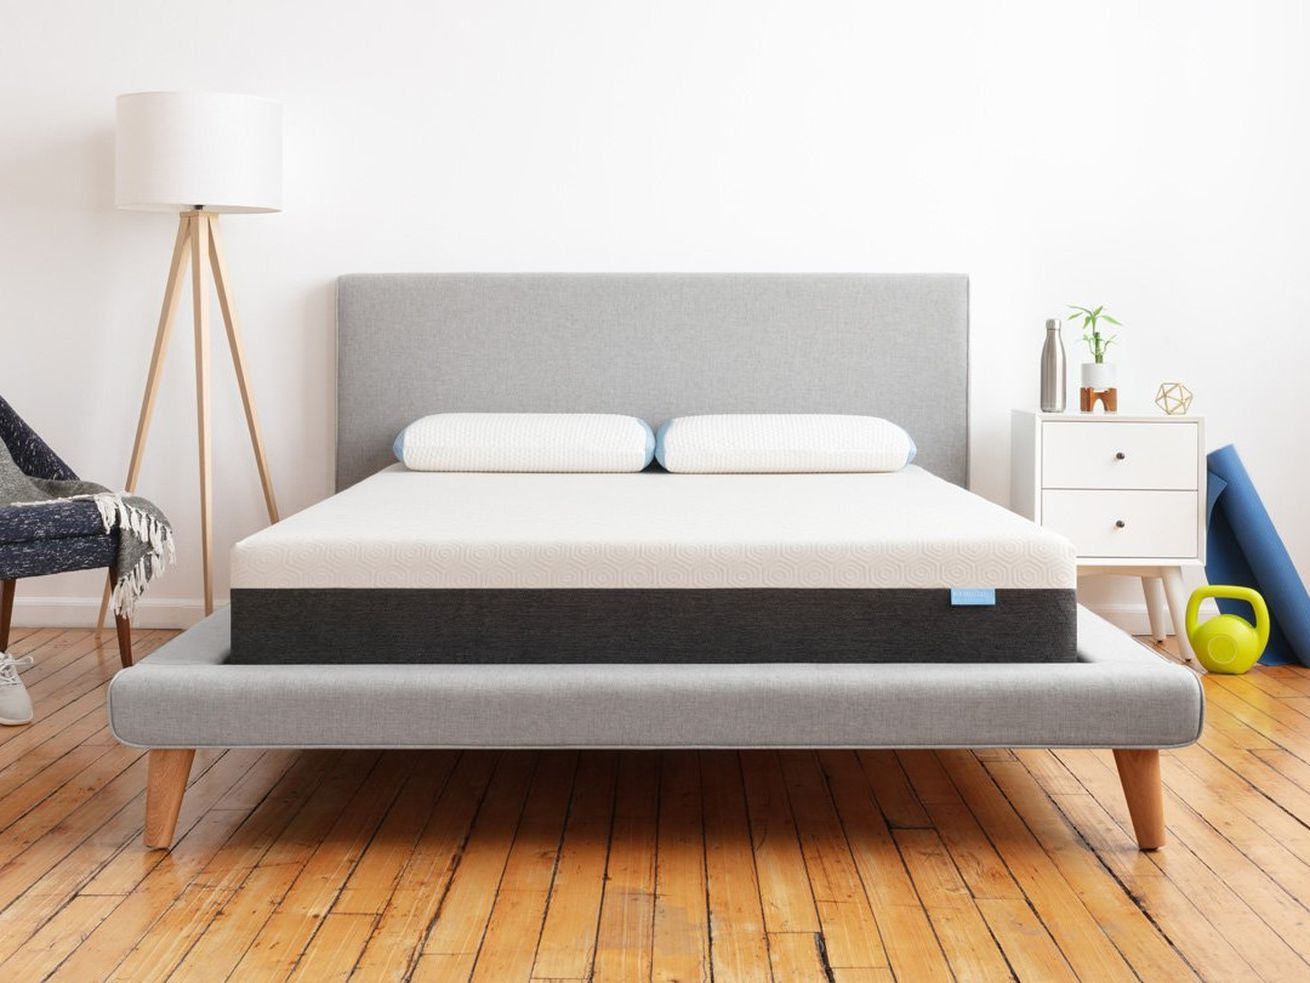 The best Labor Day mattress deals to shop now